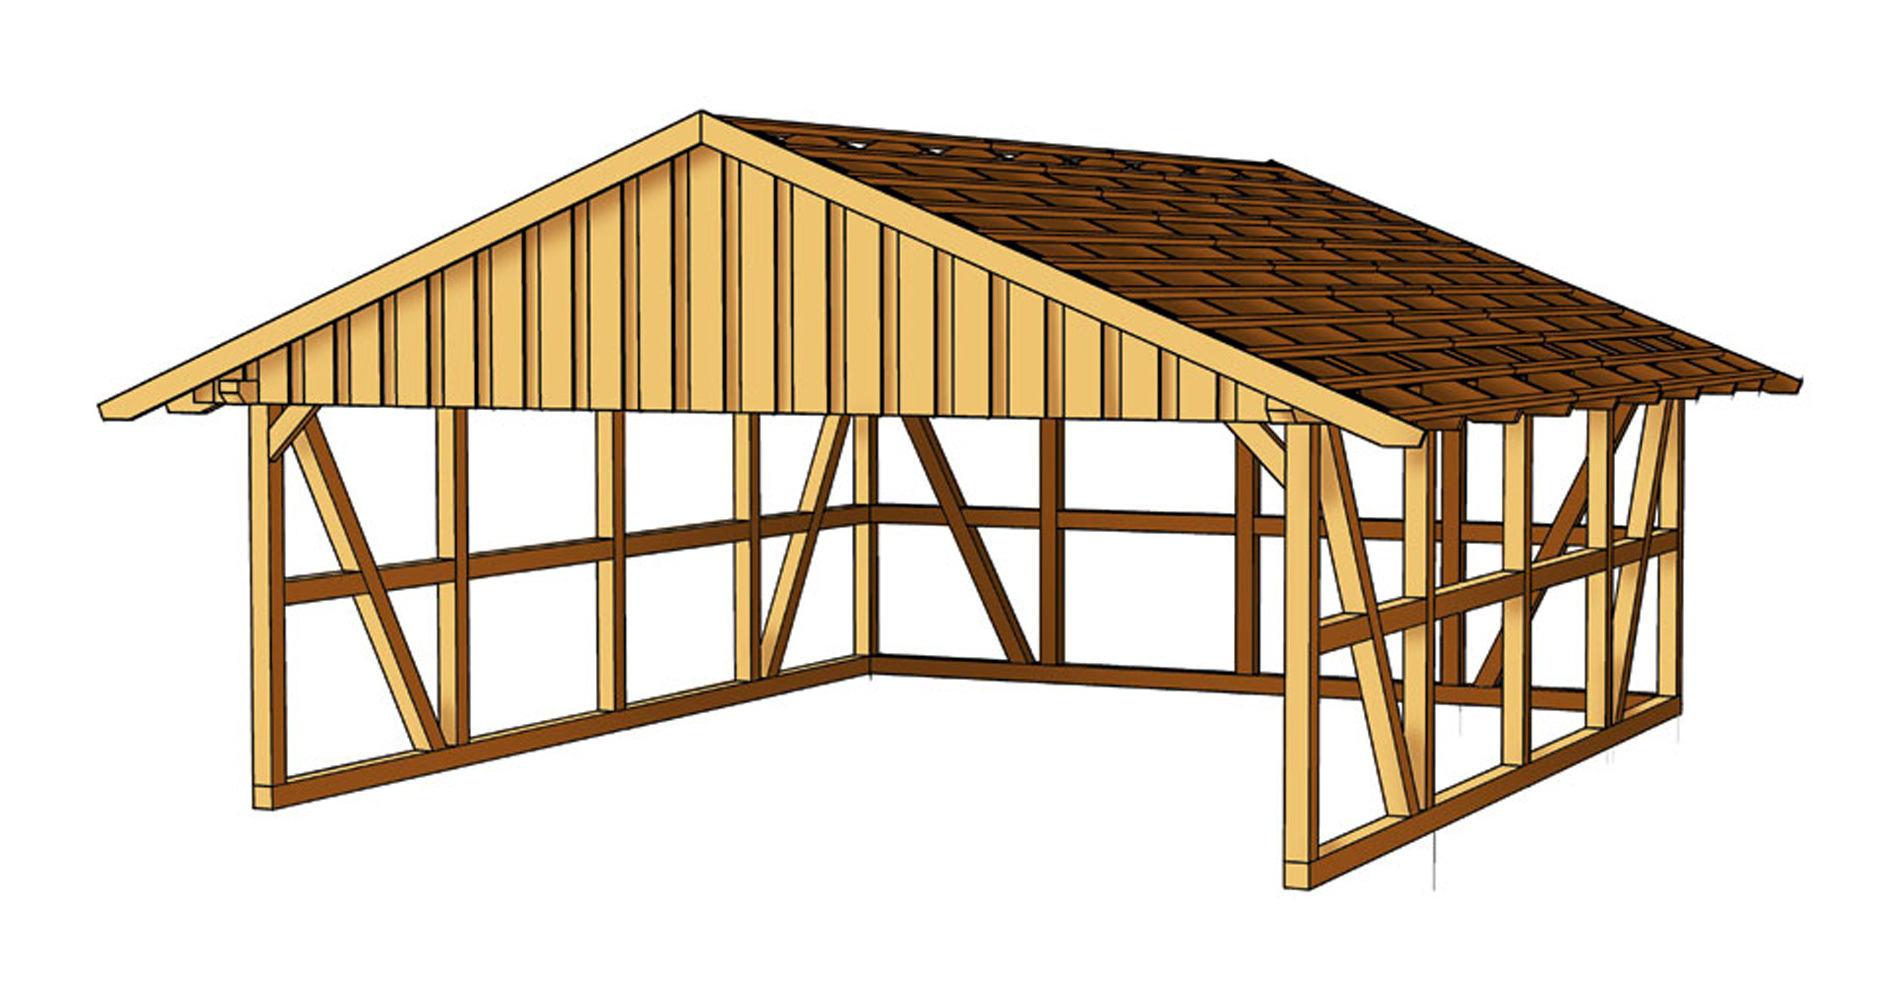 Double carport gable roof rear wall sams garden shed store for Gable roof carport